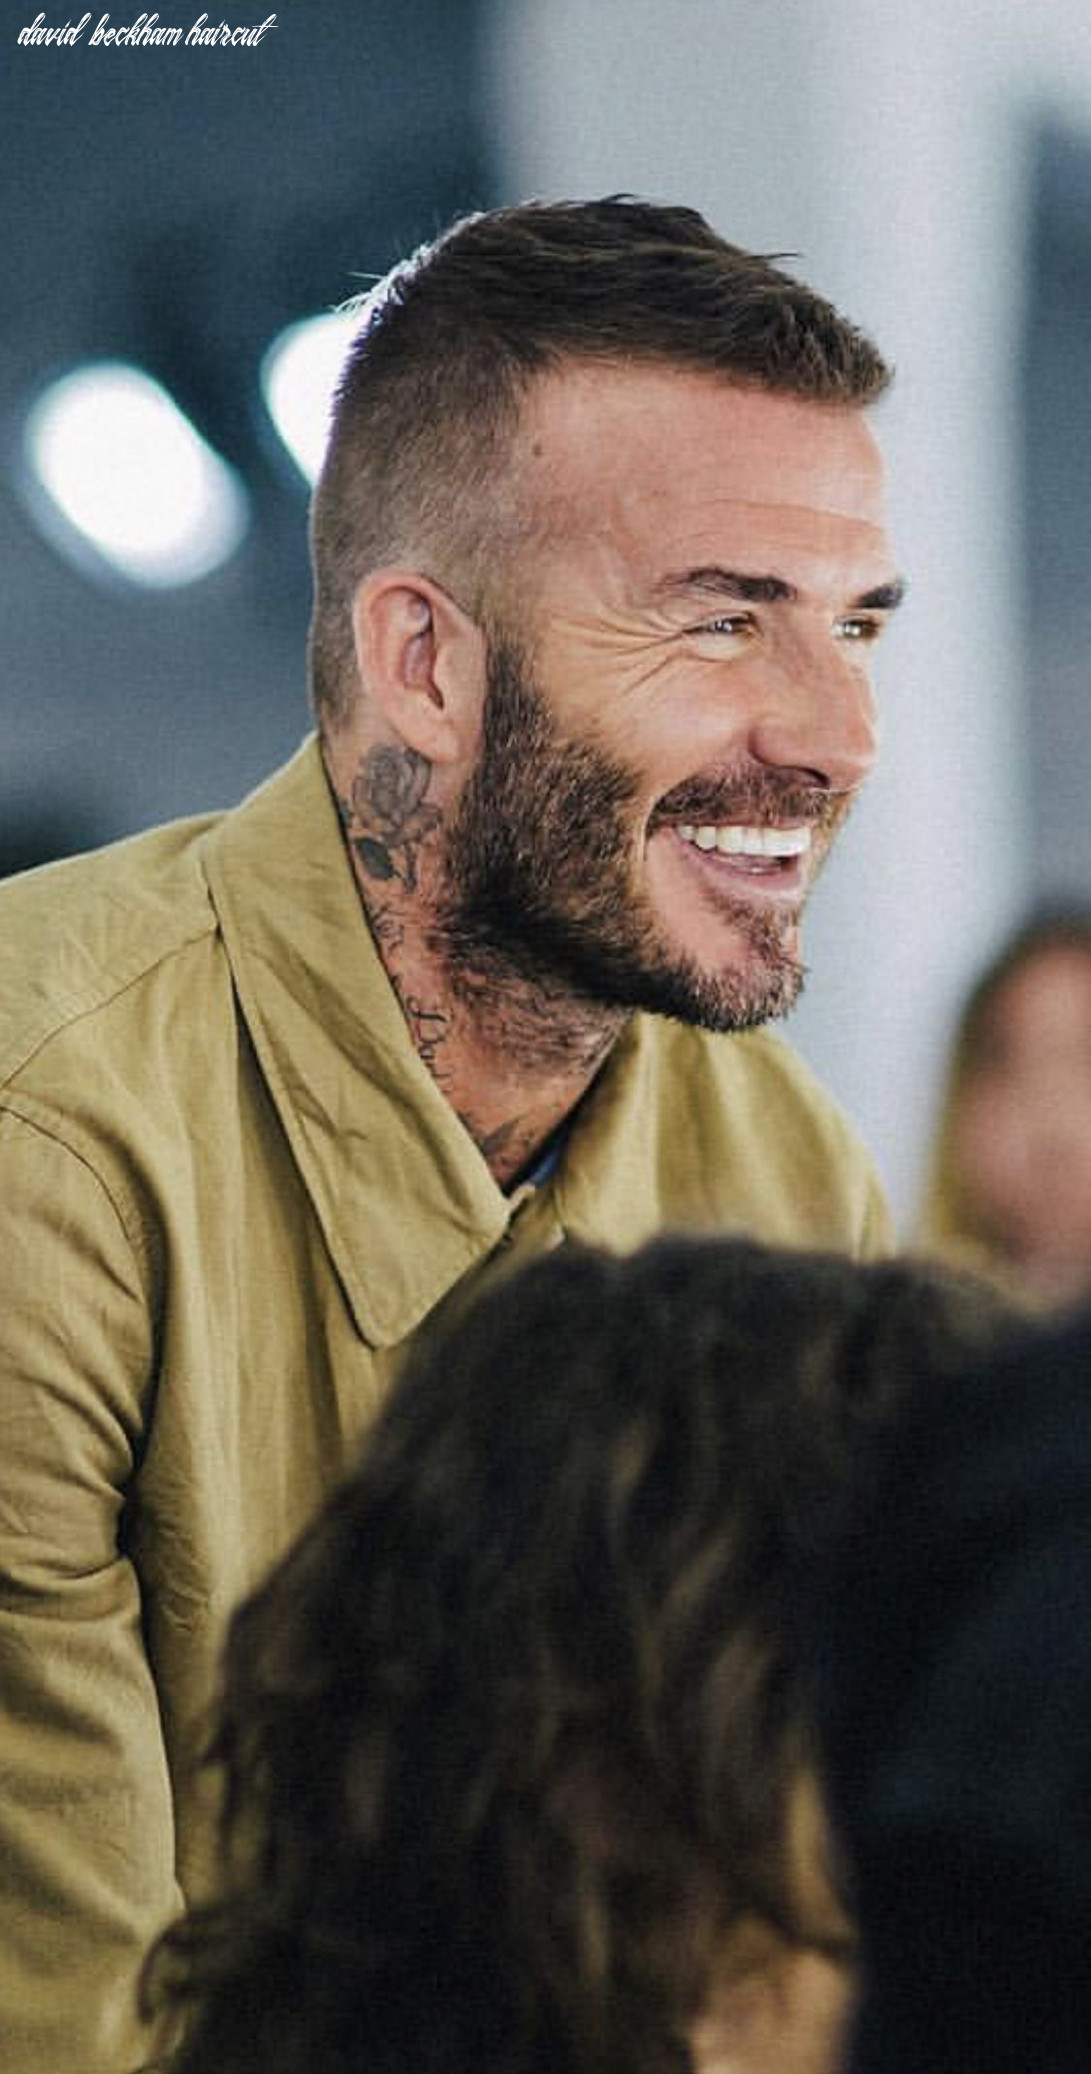 Pin by David Beckham on David Beckham | David beckham beard, David ...